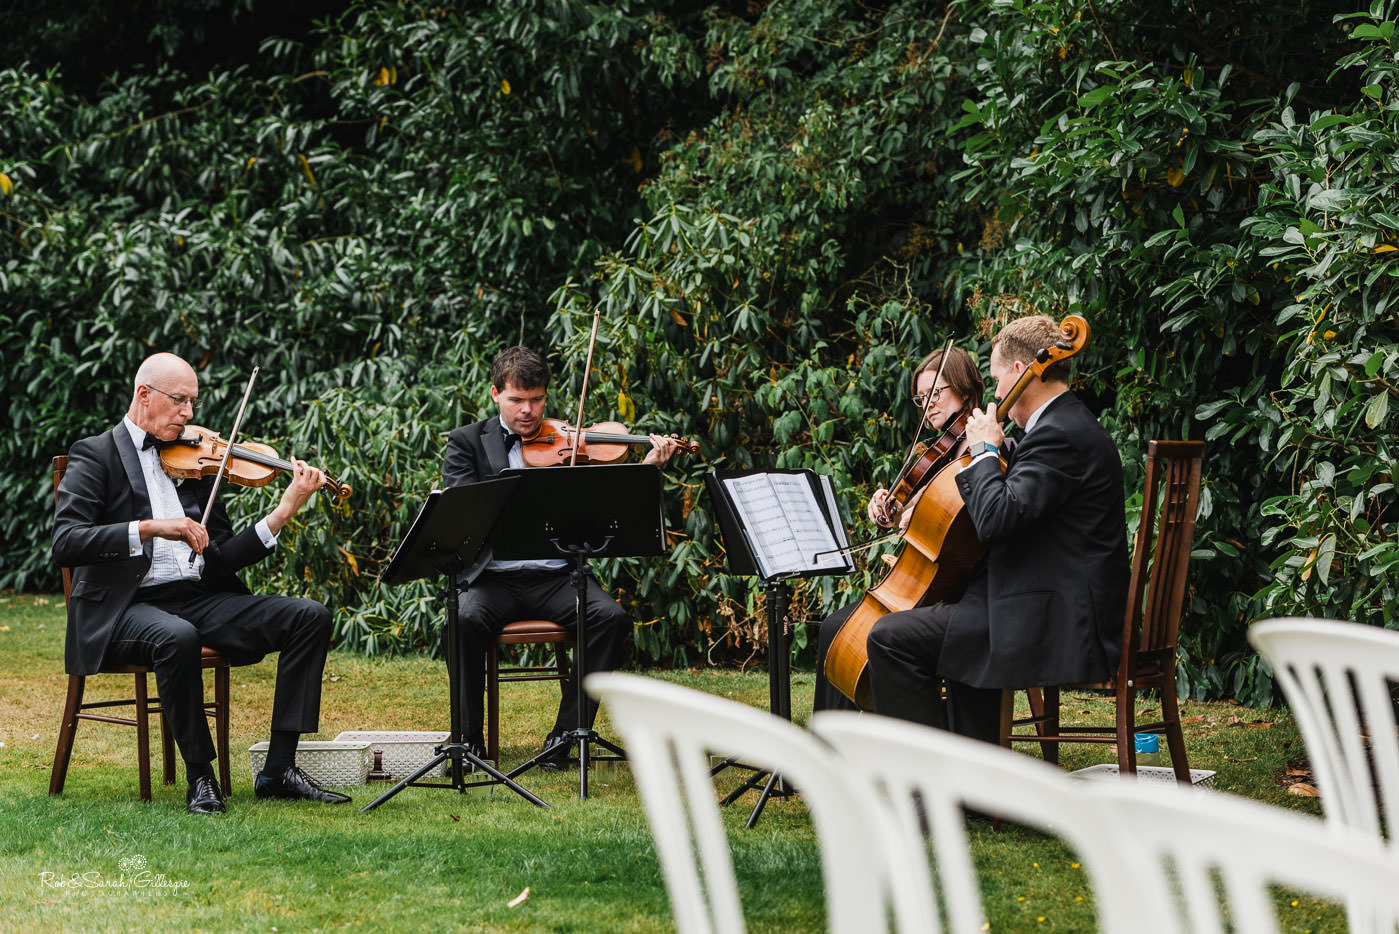 String quartet play at Pendrell Hall outdoor wedding